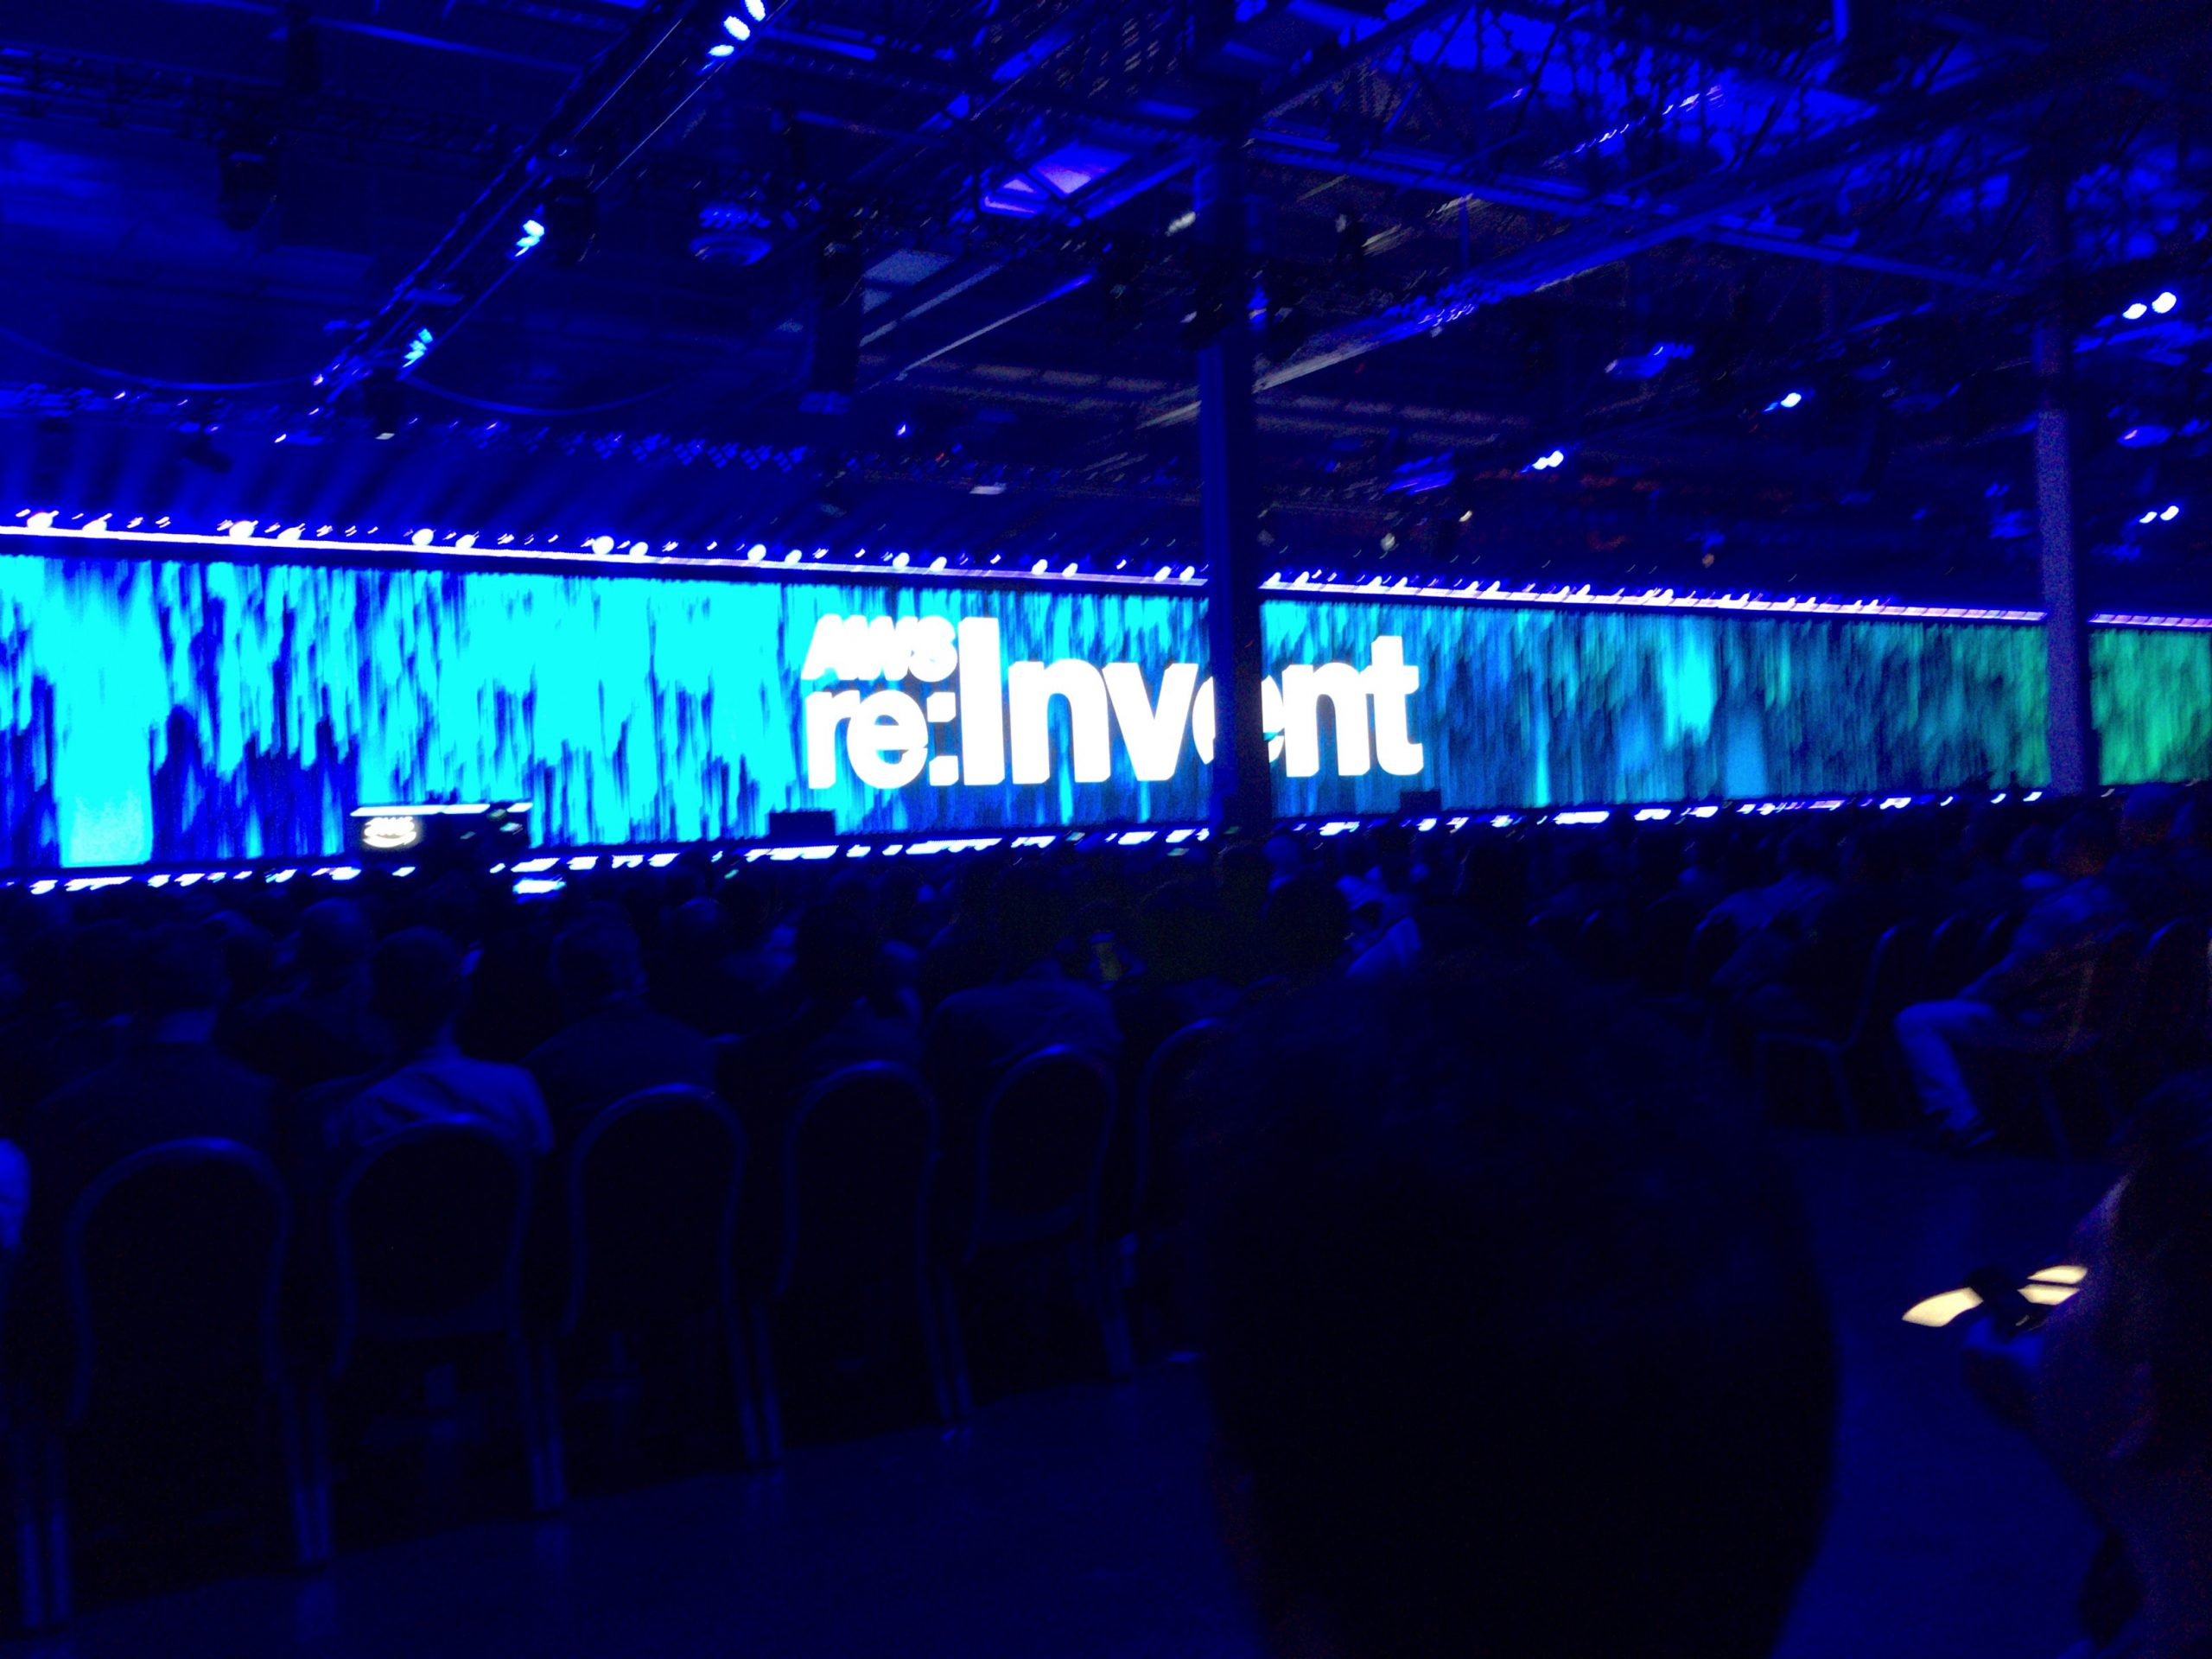 AWS re:Invent〜Keynote Day1 Andy Jassy〜